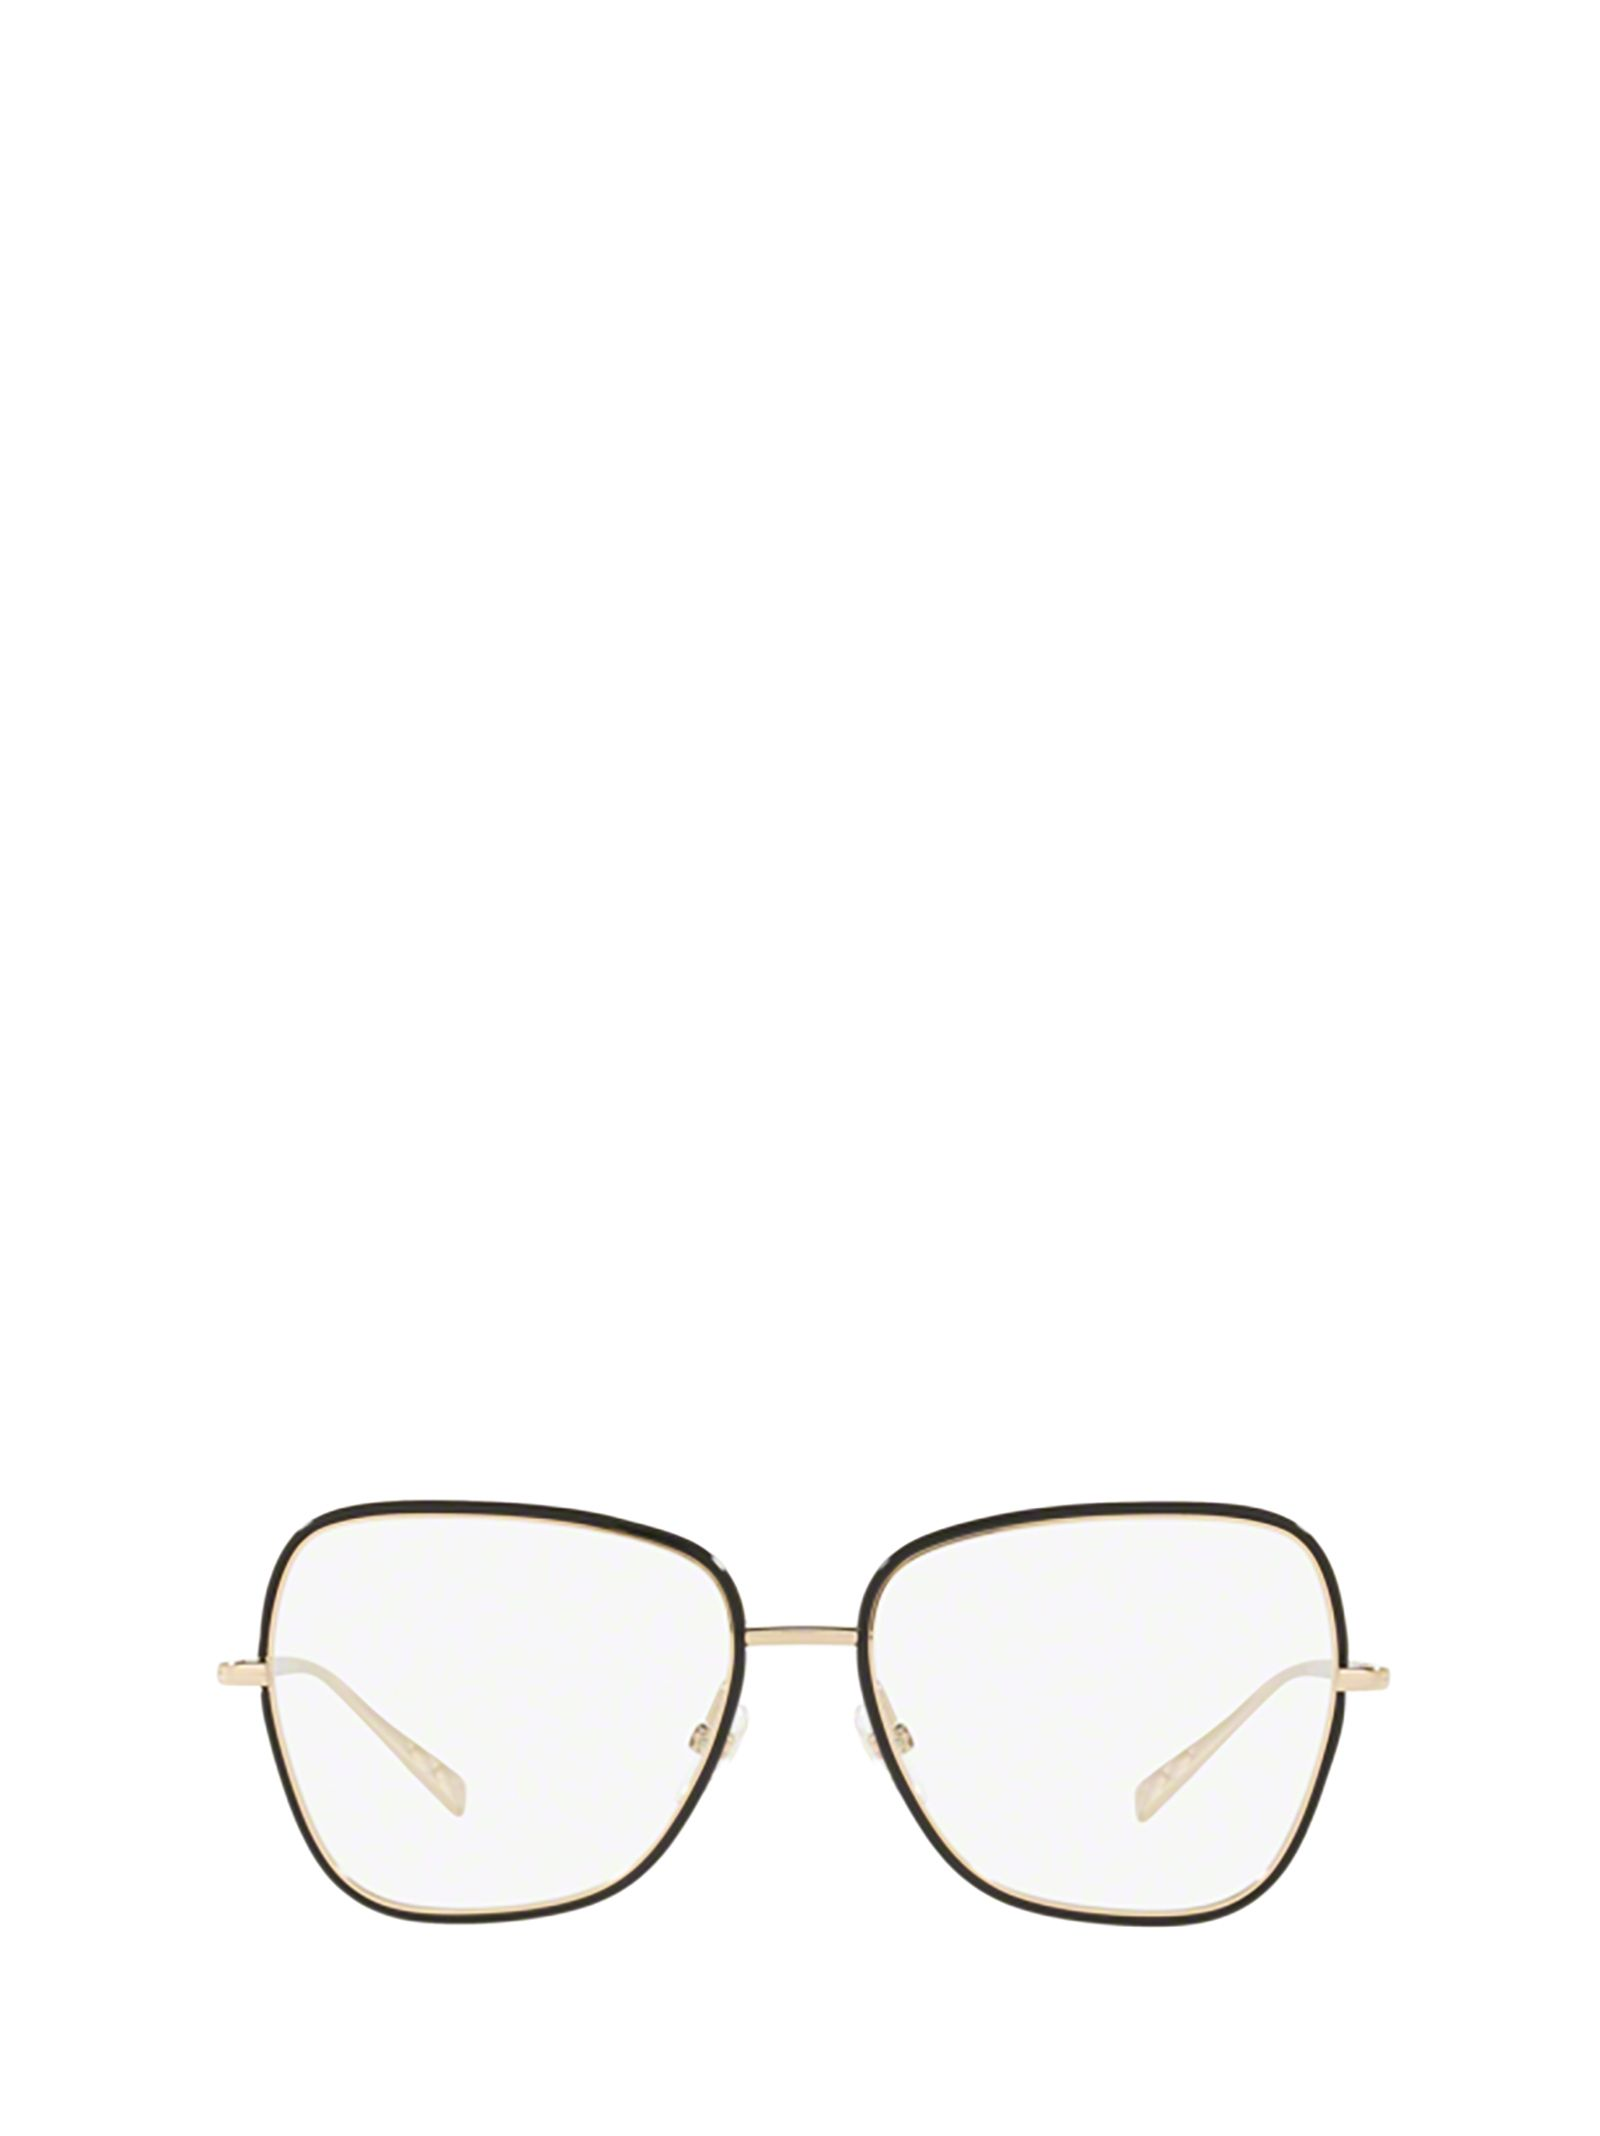 Chanel Women's Gold Metal Glasses